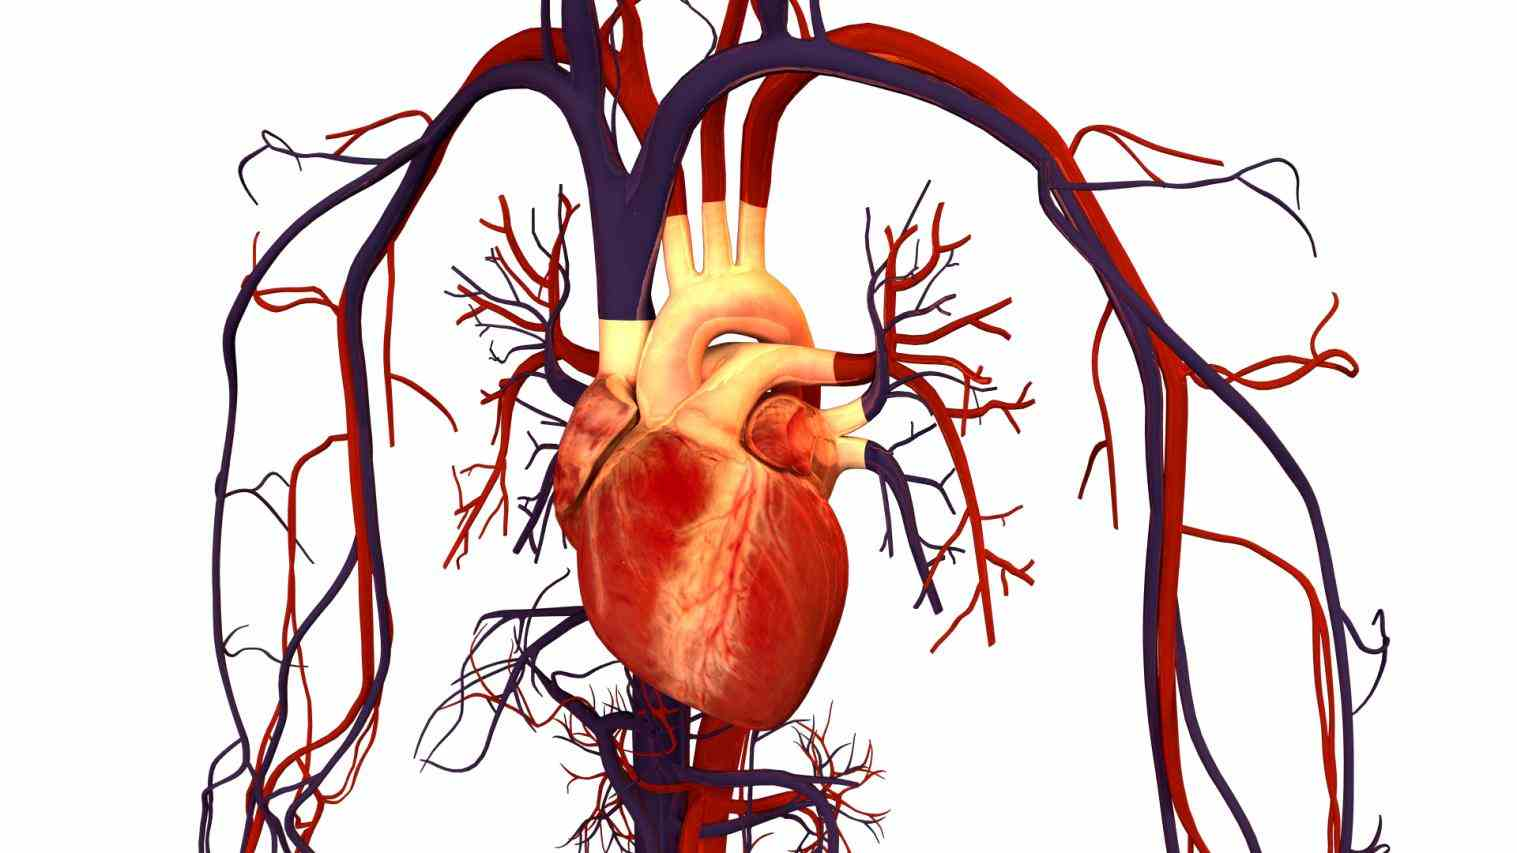 vessels that carry from the body to heart pulmonary artery carries right side lungs pick up a fresh supply